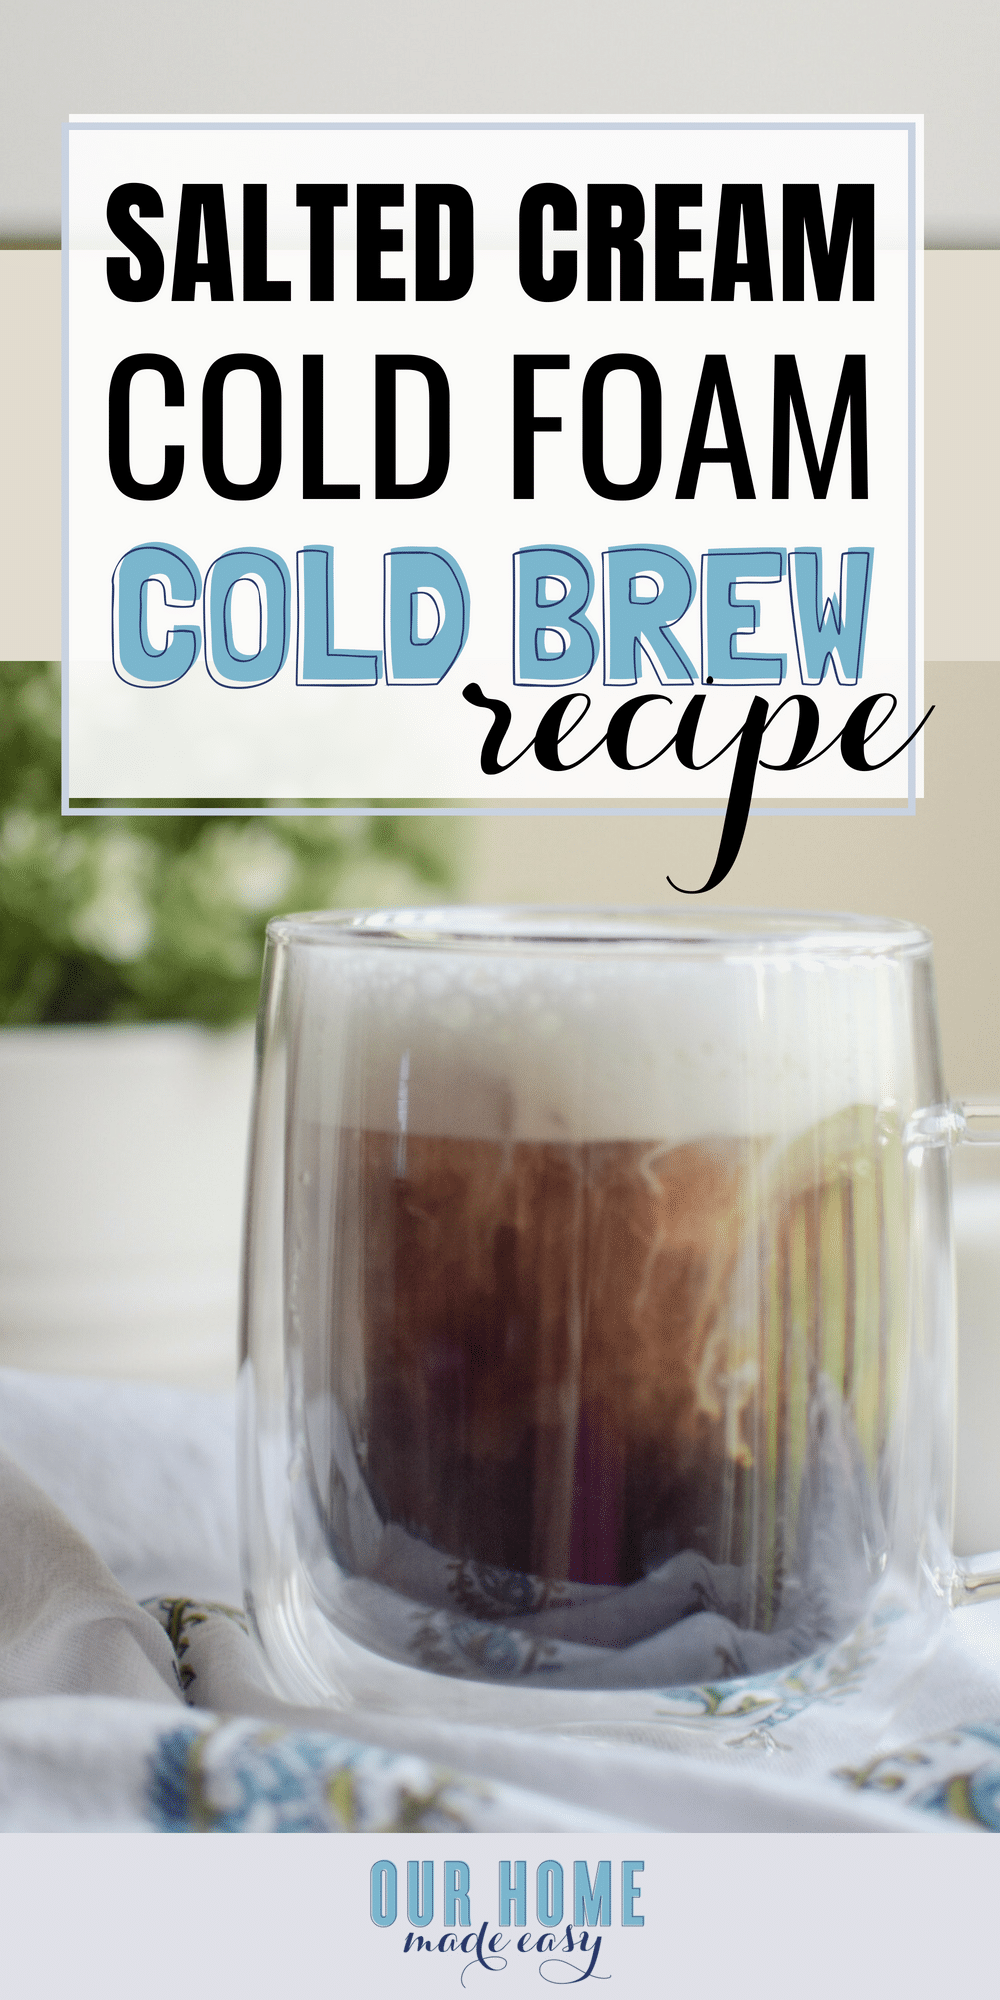 Love the newSalted Cream Cold Foam Cold Brew? Make it home really easily with this copycat recipe! Save money & pour in all the cold foam you want! 38491771800505245